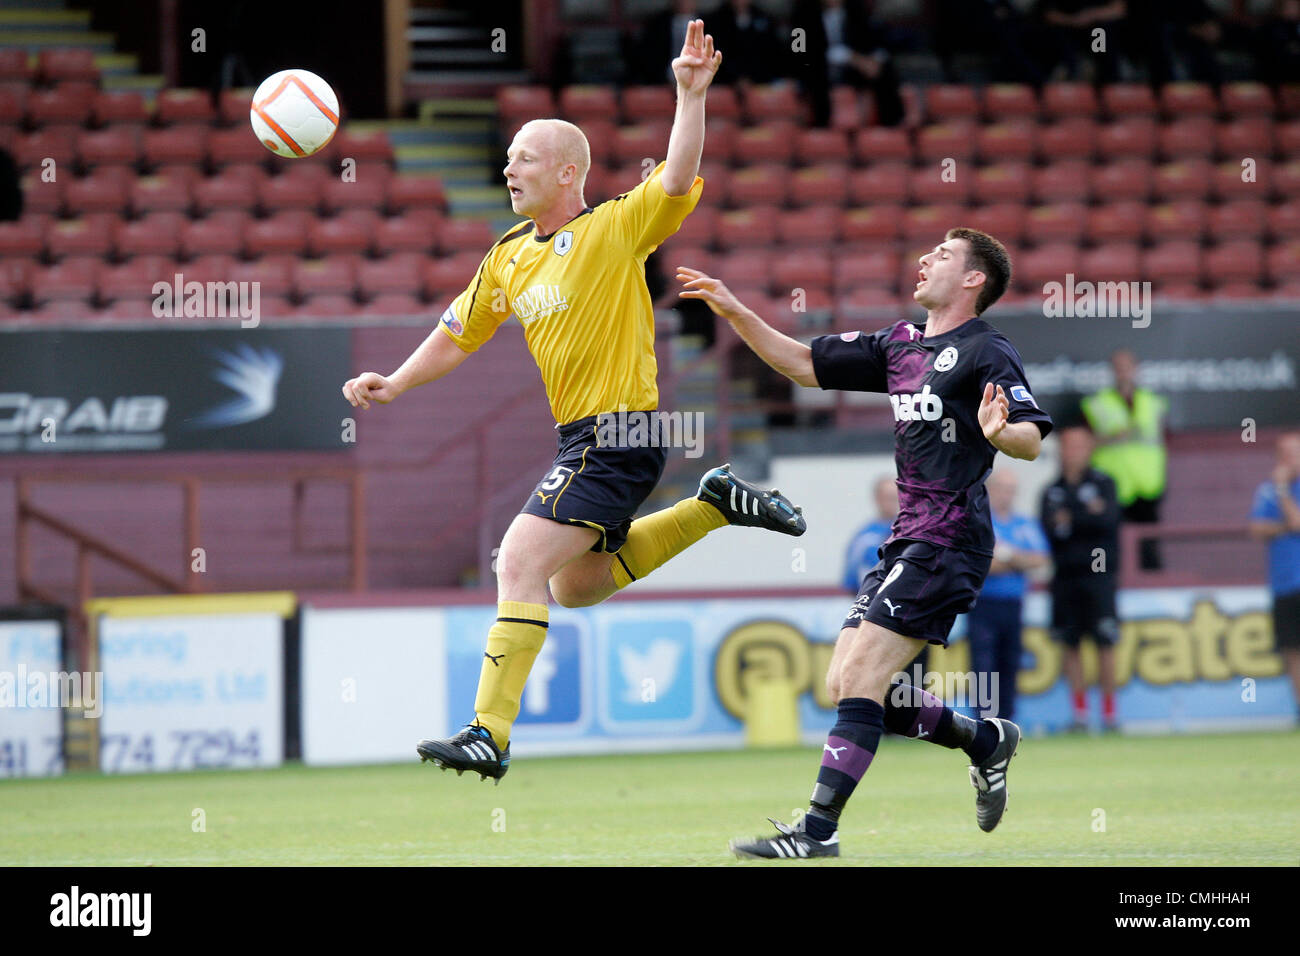 11th Aug 2012. 11.08.2012 Glasgow, Scotland. 5 Chris Smith in action during the Scottish Football League Division - Stock Image